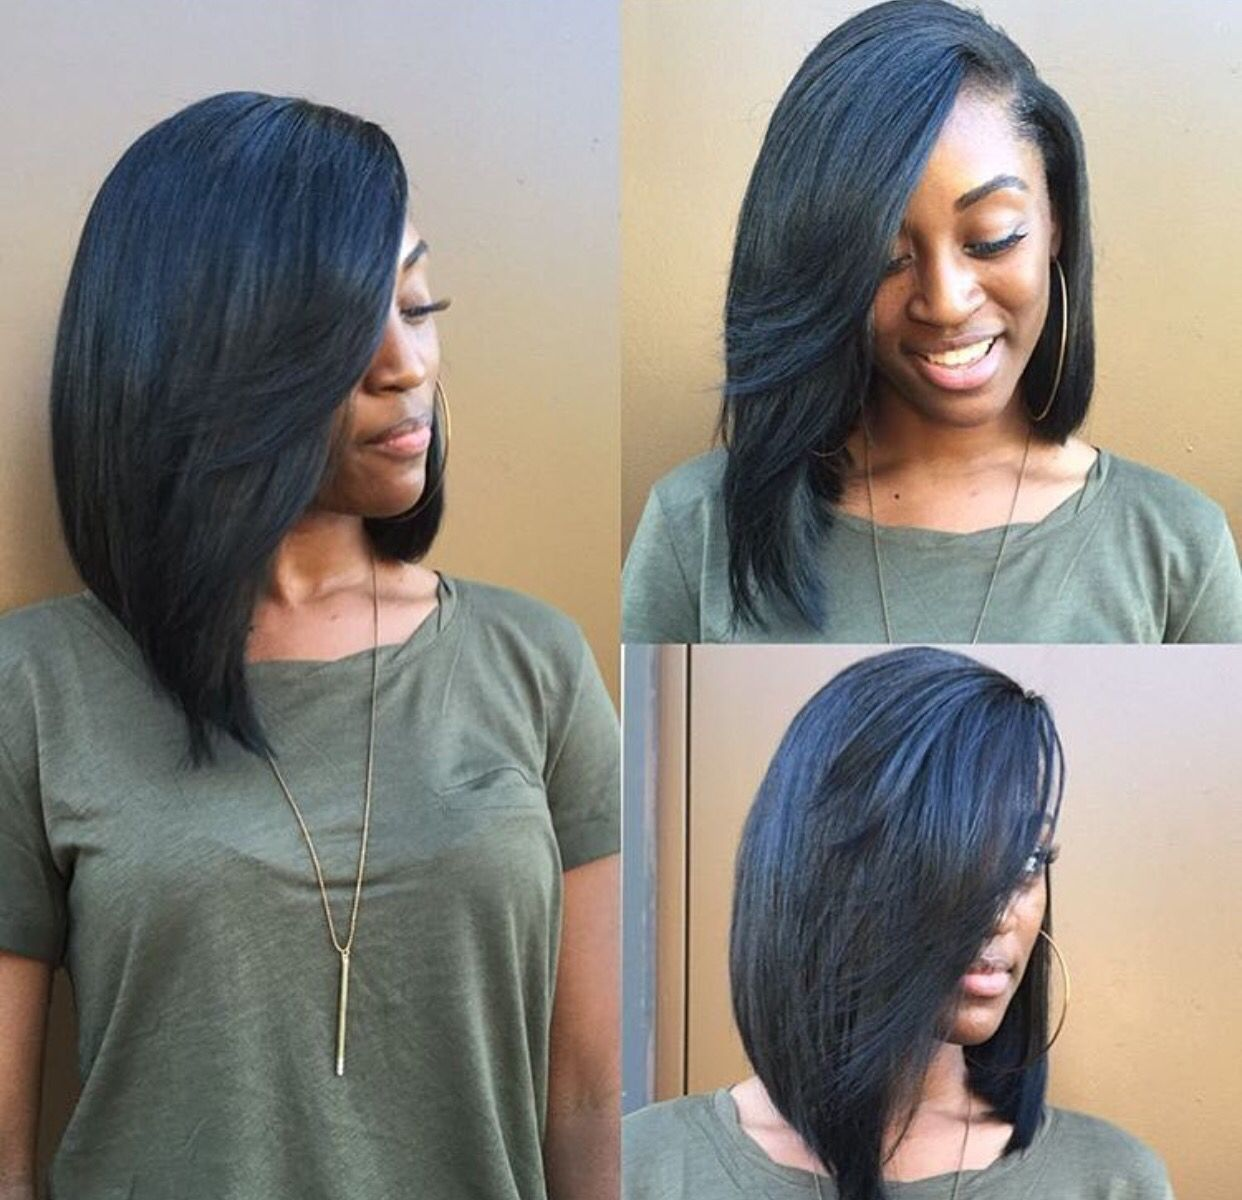 Pin by lexi helton on hair pinterest bobs hair style and bob cut